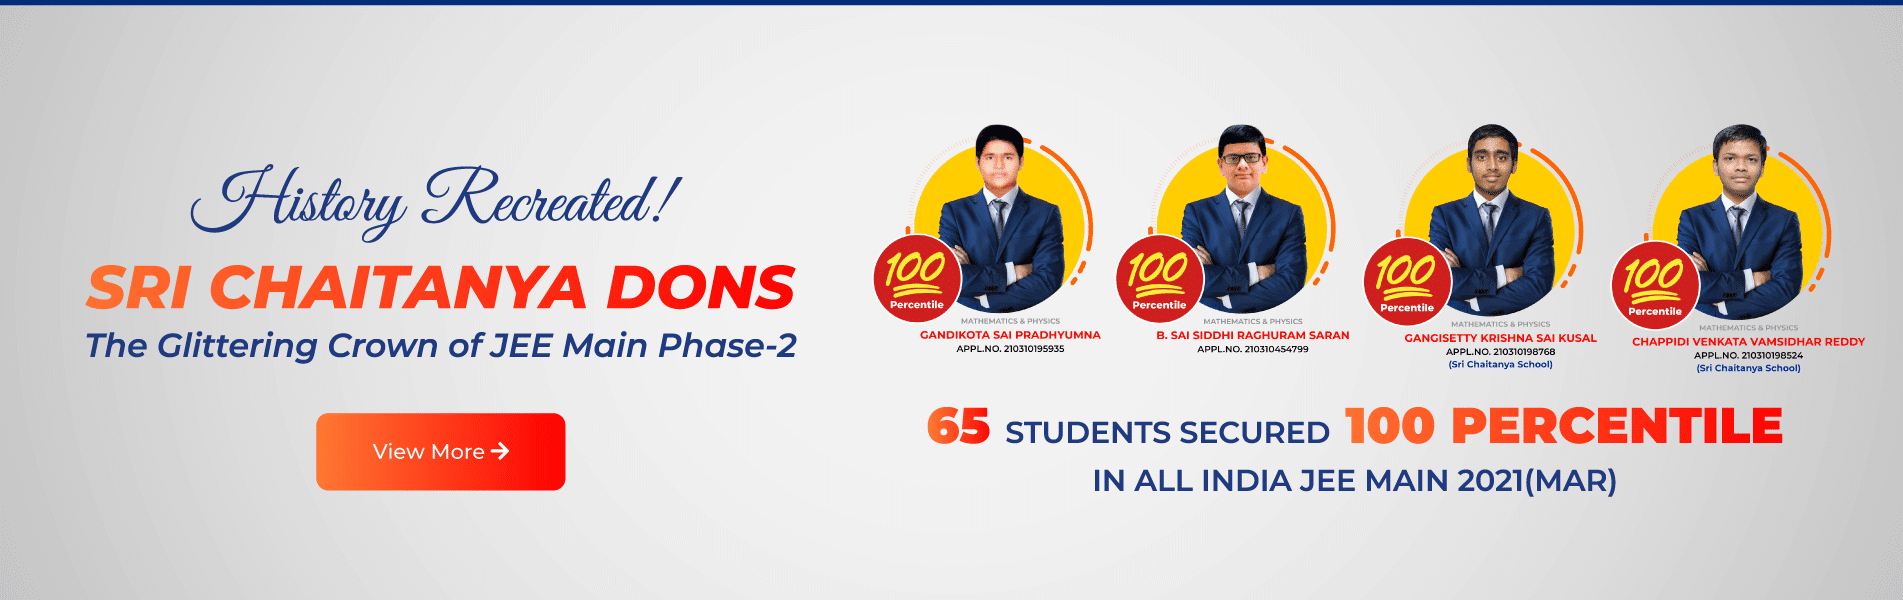 JEE-MAIN-RESULTS-MARCH-2021-PHASE-2